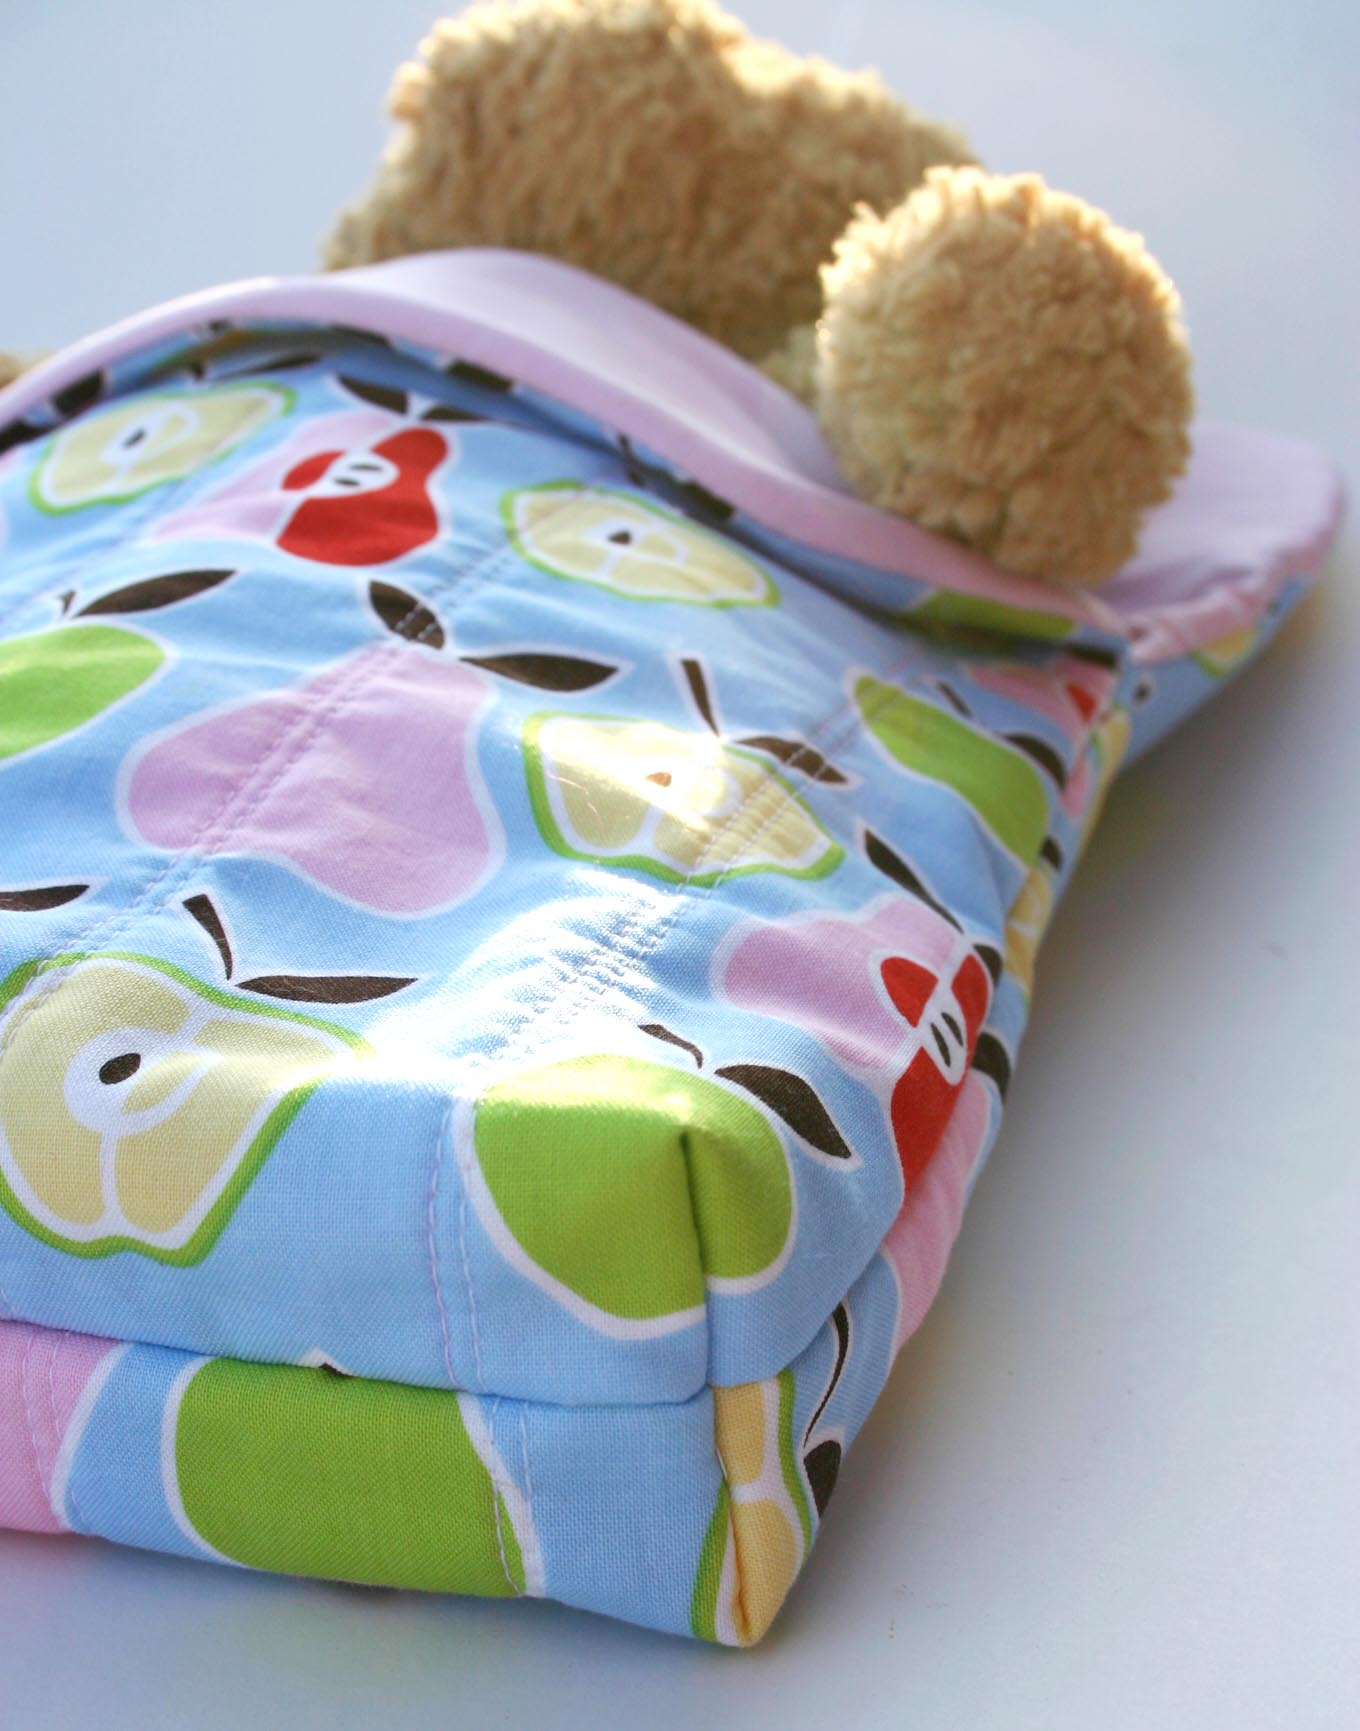 Doll and Teddy Sleeping Bag Sewing Pattern